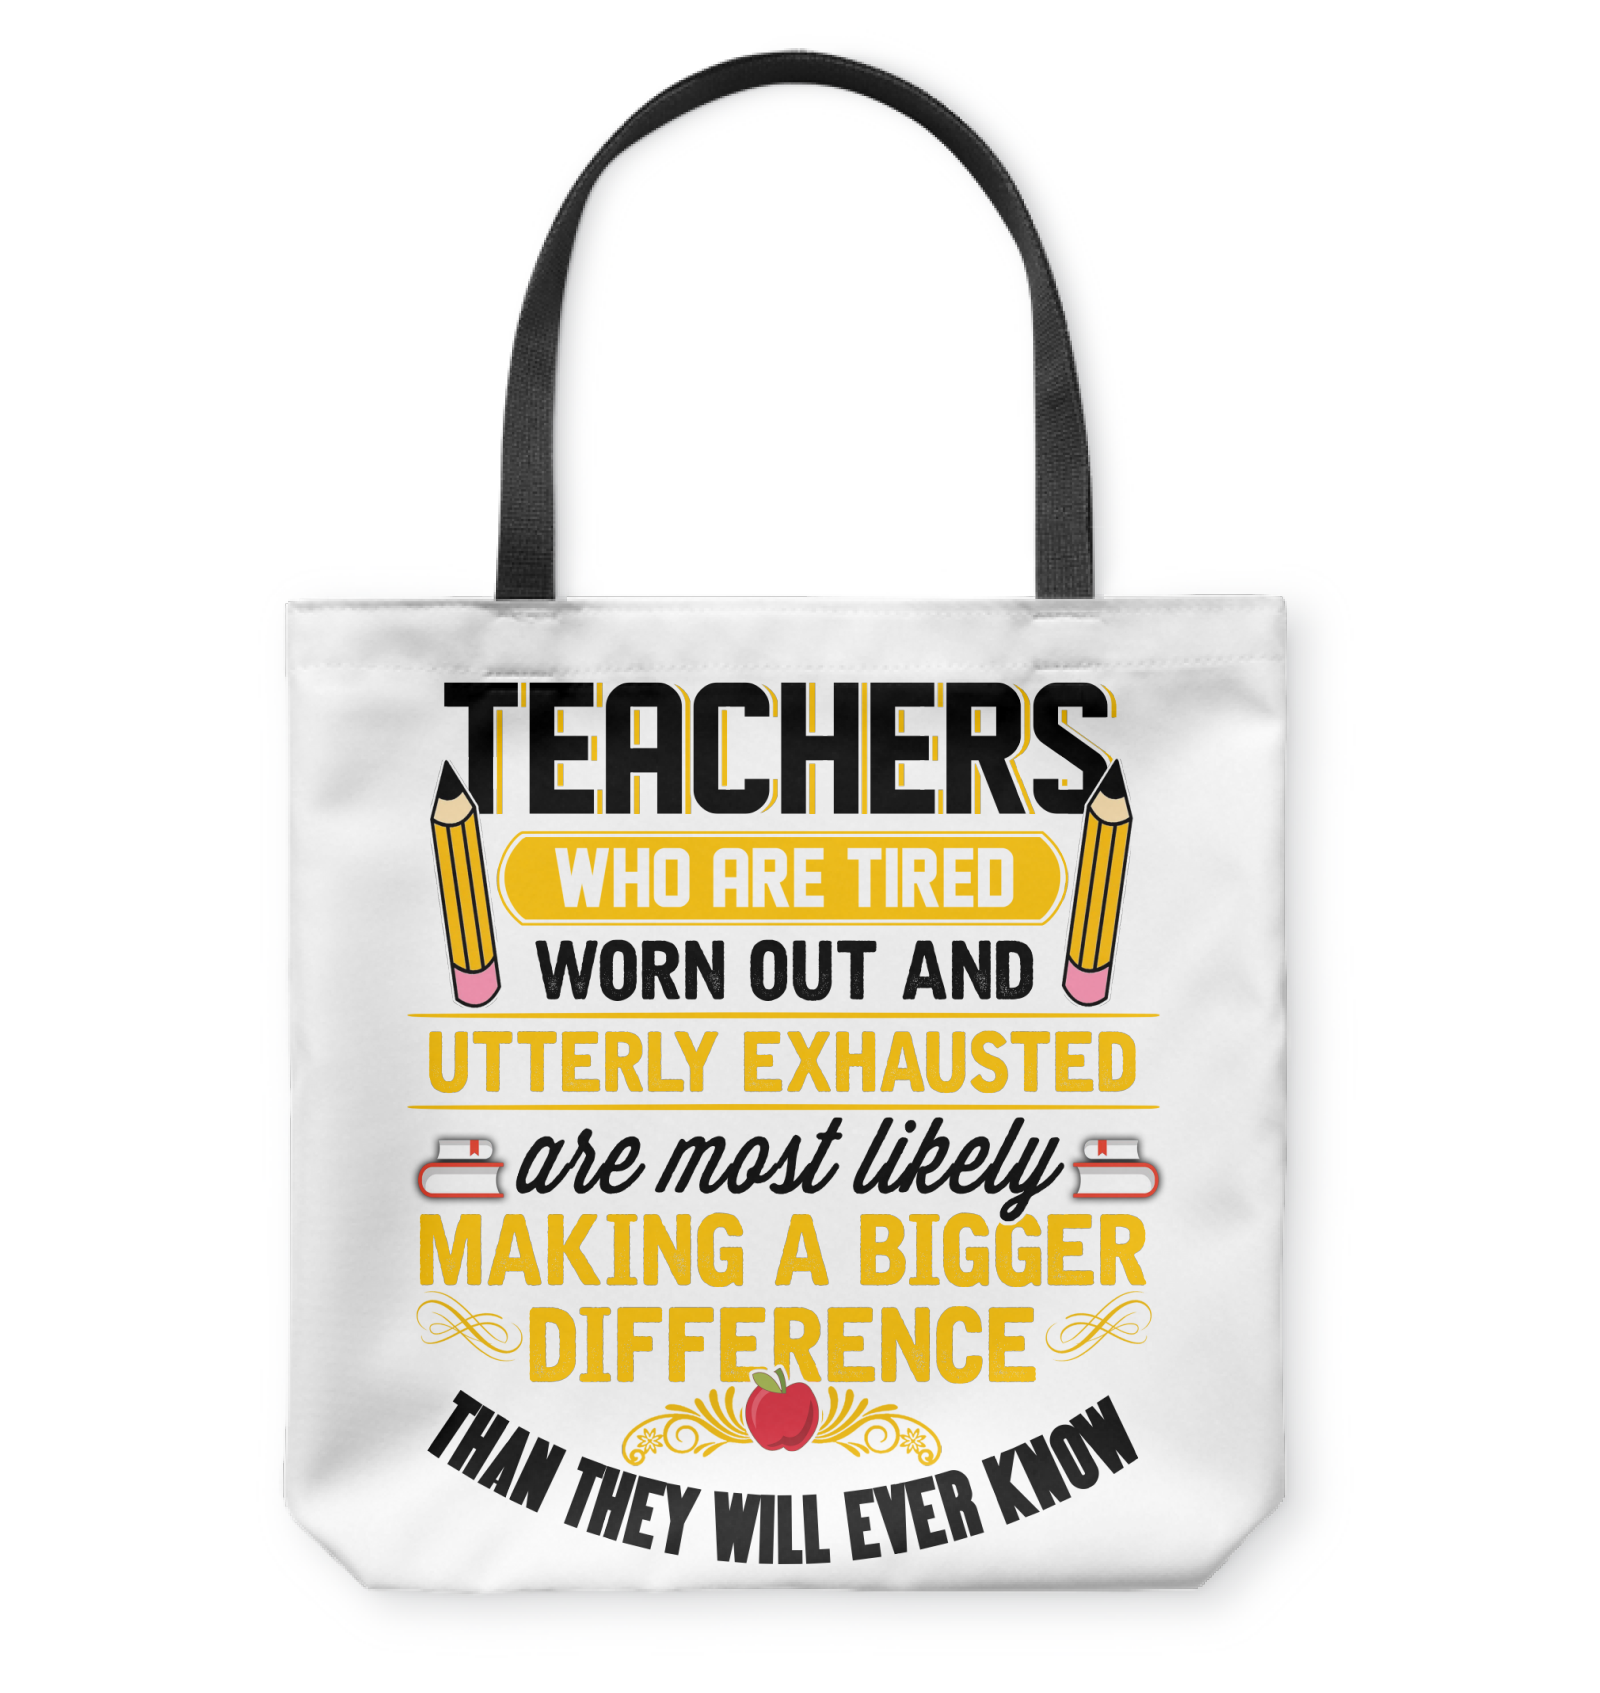 VIRA tote bag for awesome teachers